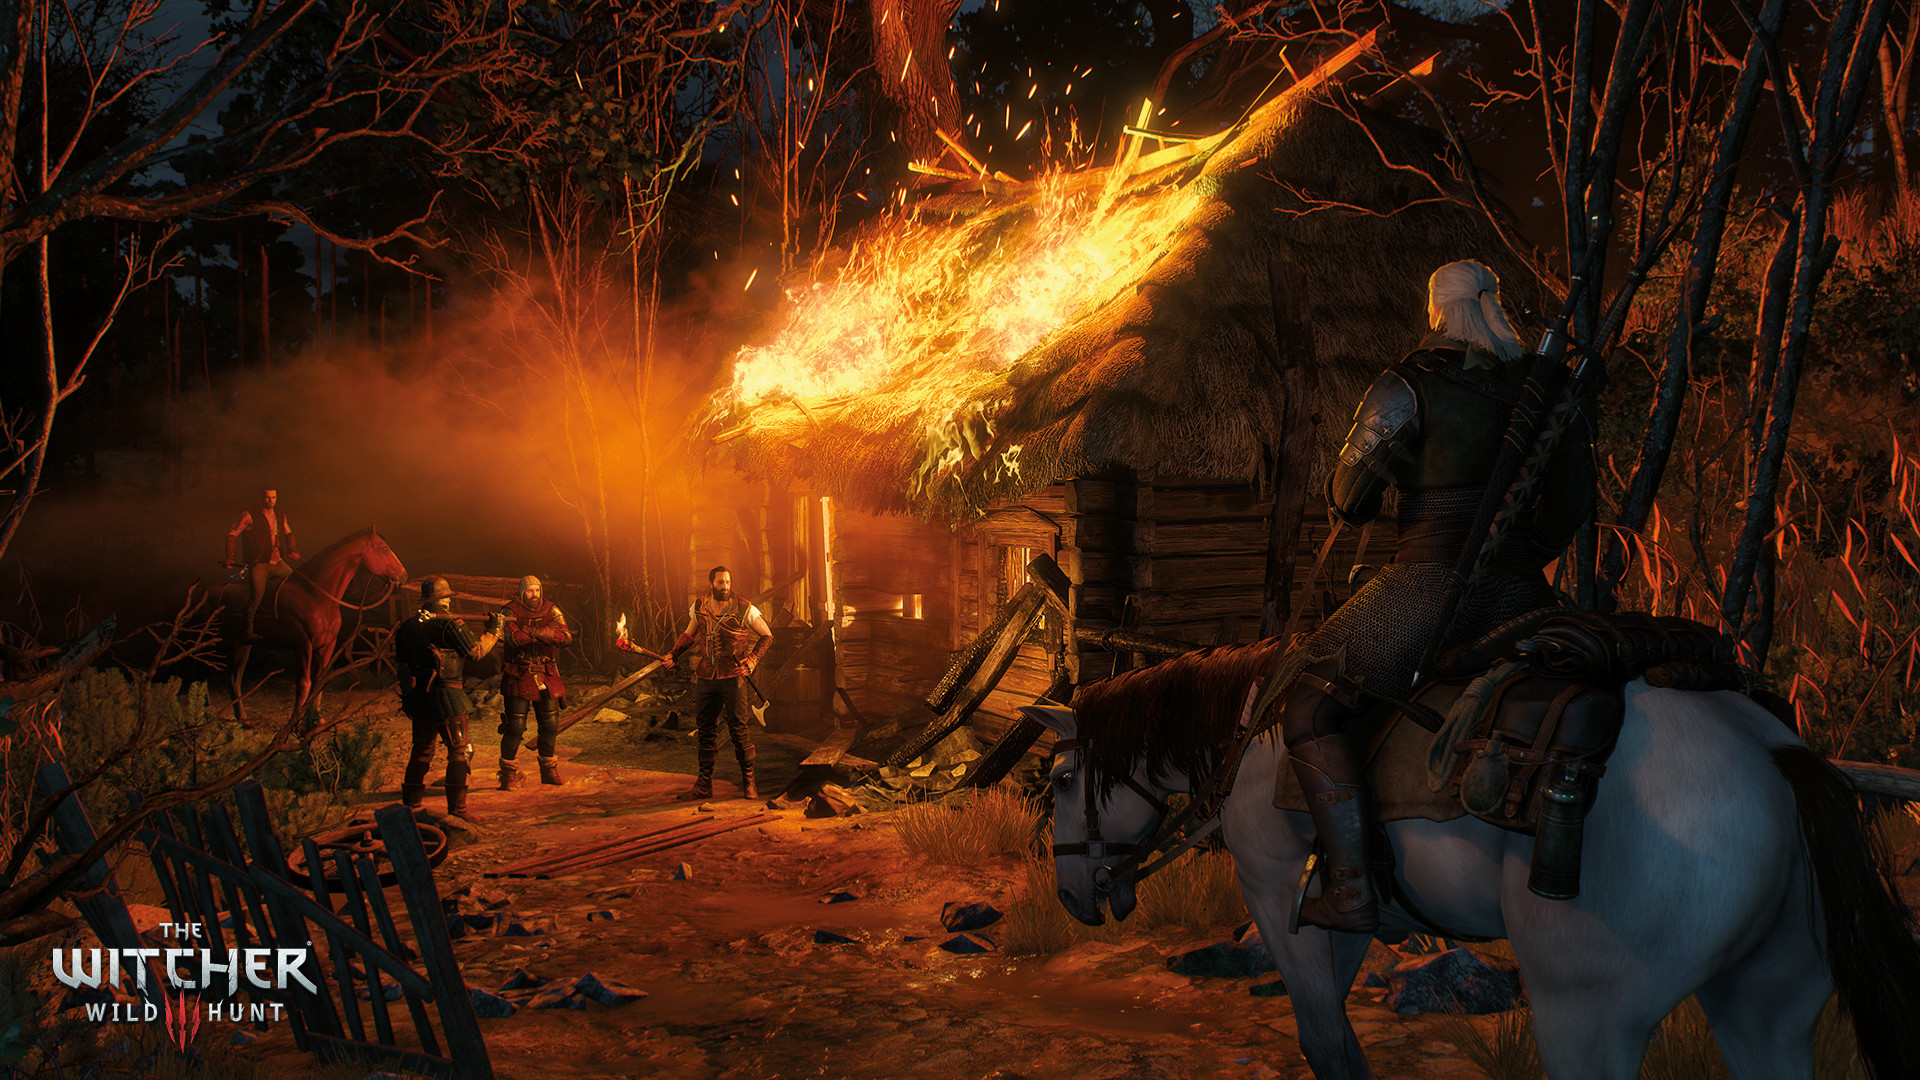 The Witcher 3 Wild Hunt ESPAÑOL PC Full + 16 DLC + Update v1.10 + Hearts Of Stone DLC + REPACK 6 DVD5 (JPW) 8